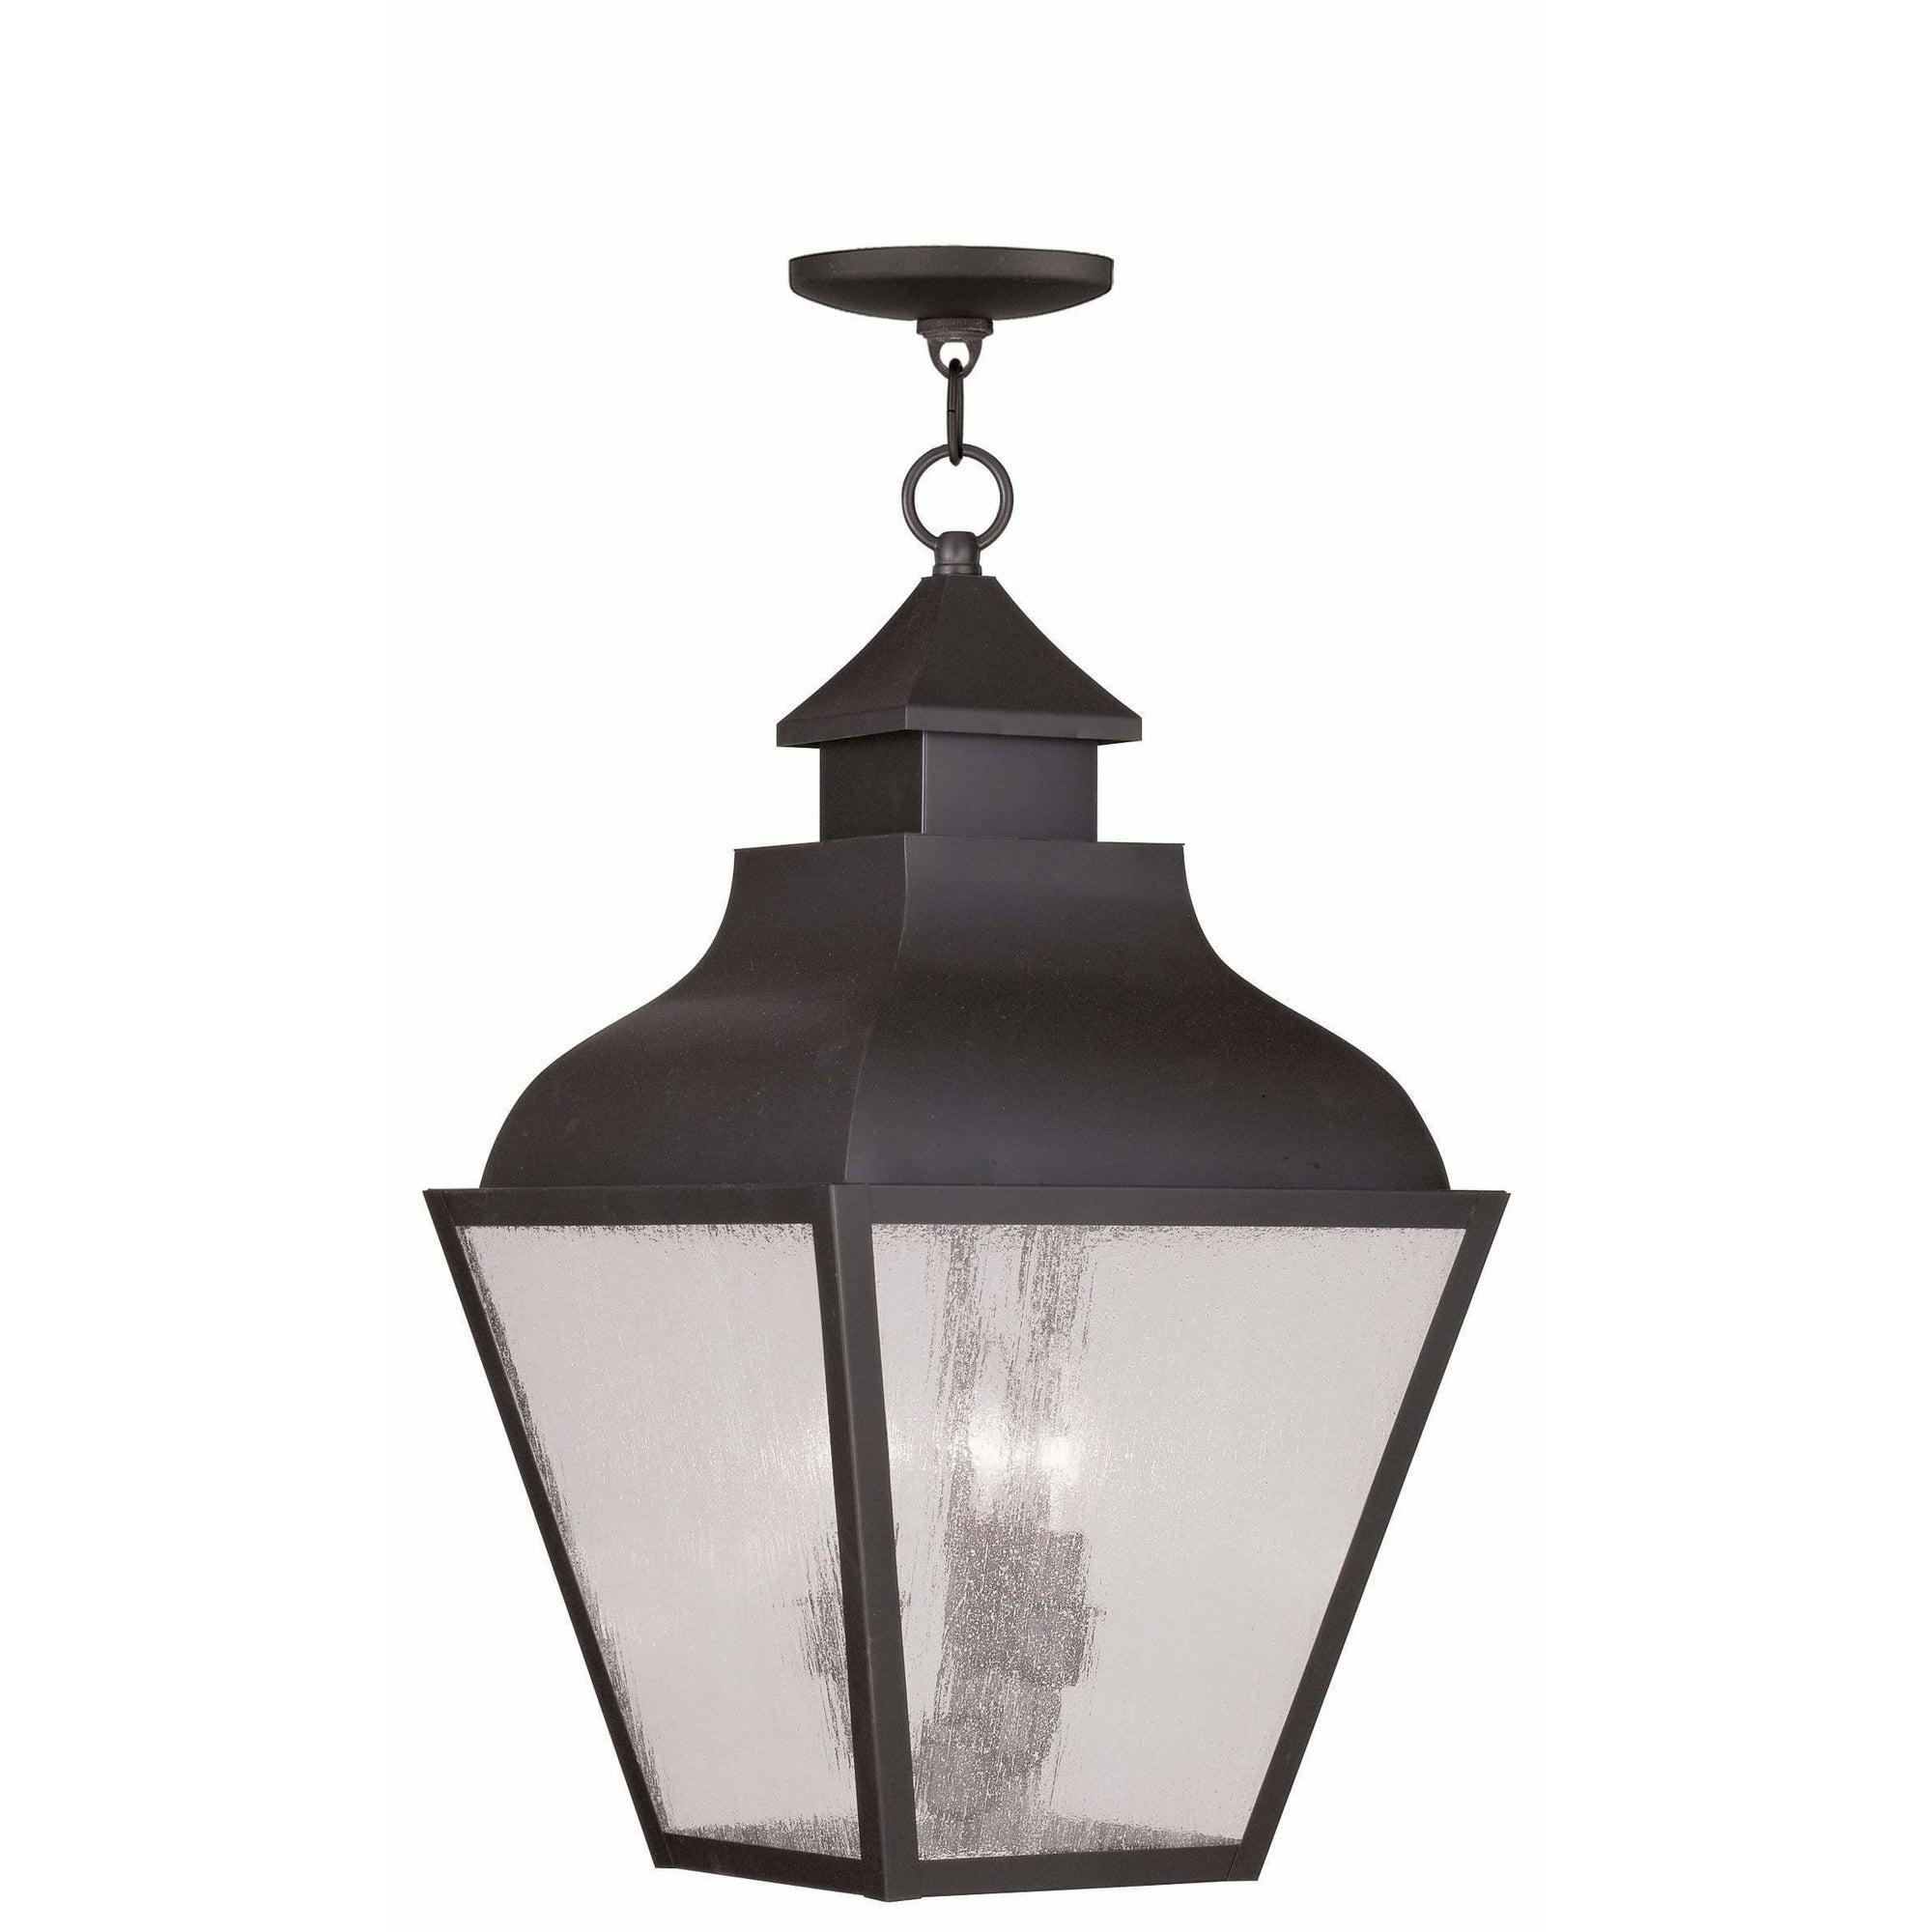 Livex Lighting Outdoor Pendants Lanterns Bronze / Seeded Glass Vernon Bronze Outdoor Pendant Lantern  By Livex Lighting 2456-07